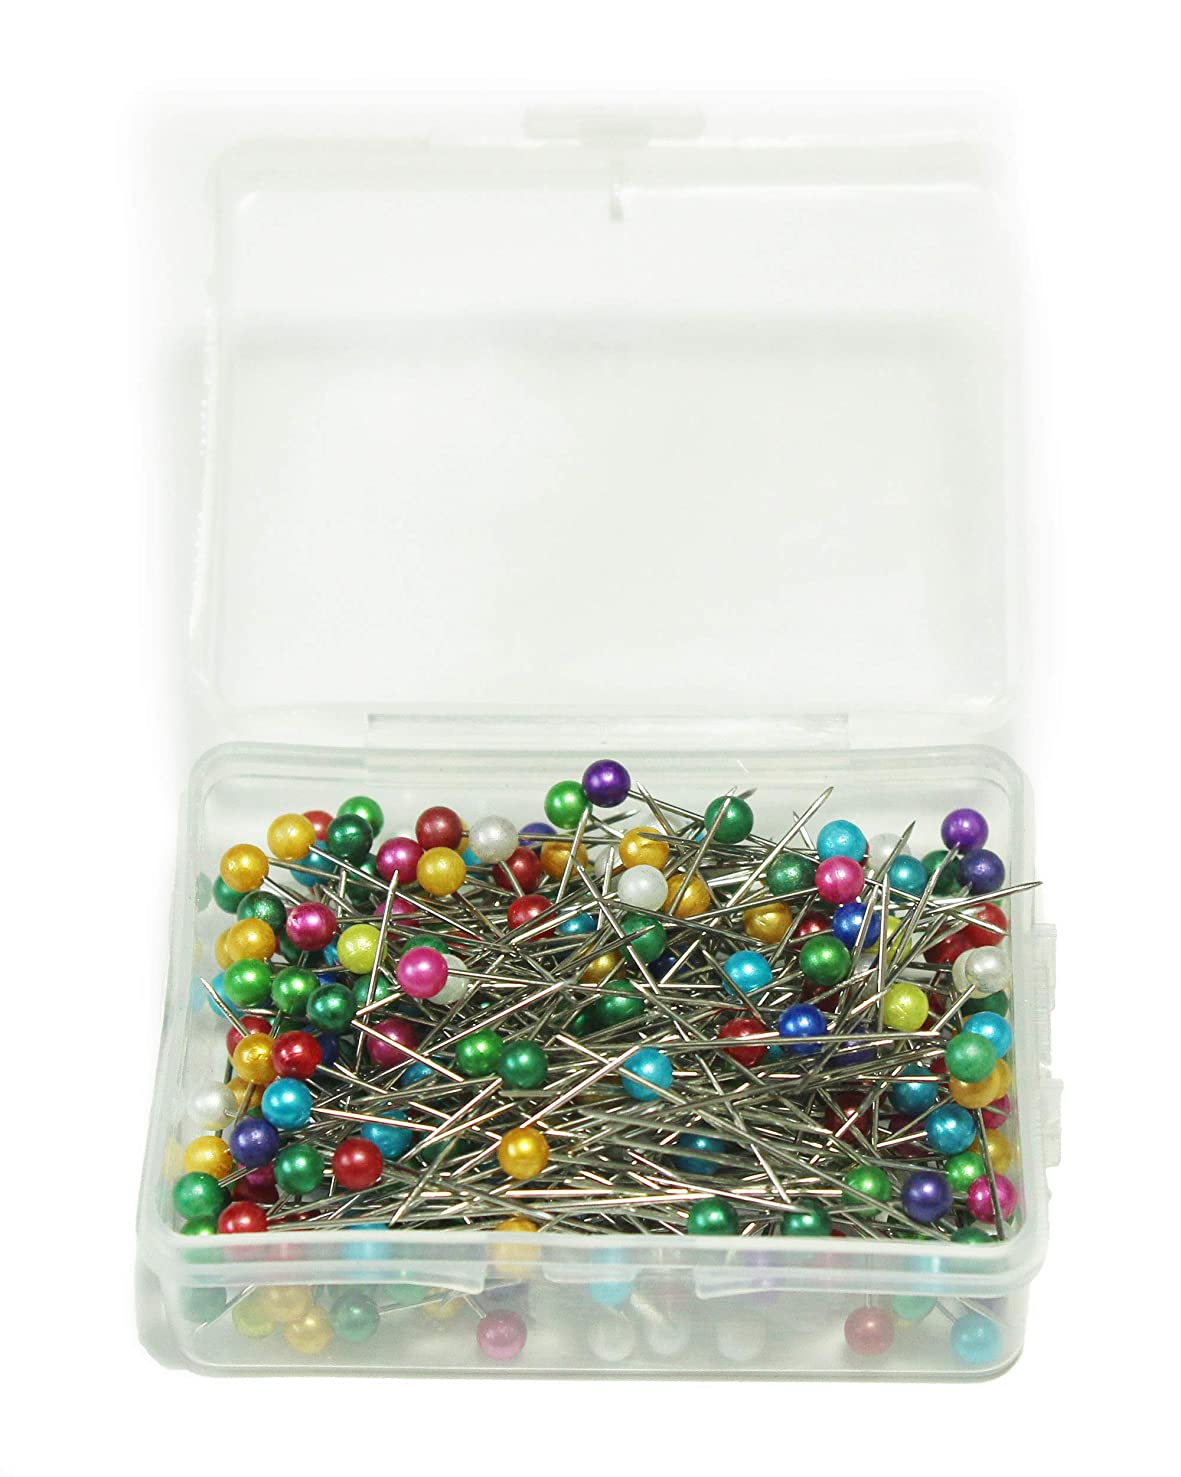 ALL in ONE 250pcs Mixed Color Sewing Pins Pearl Ball Head Pins Straight Pins Quilting Pins for Dressmaker with Box